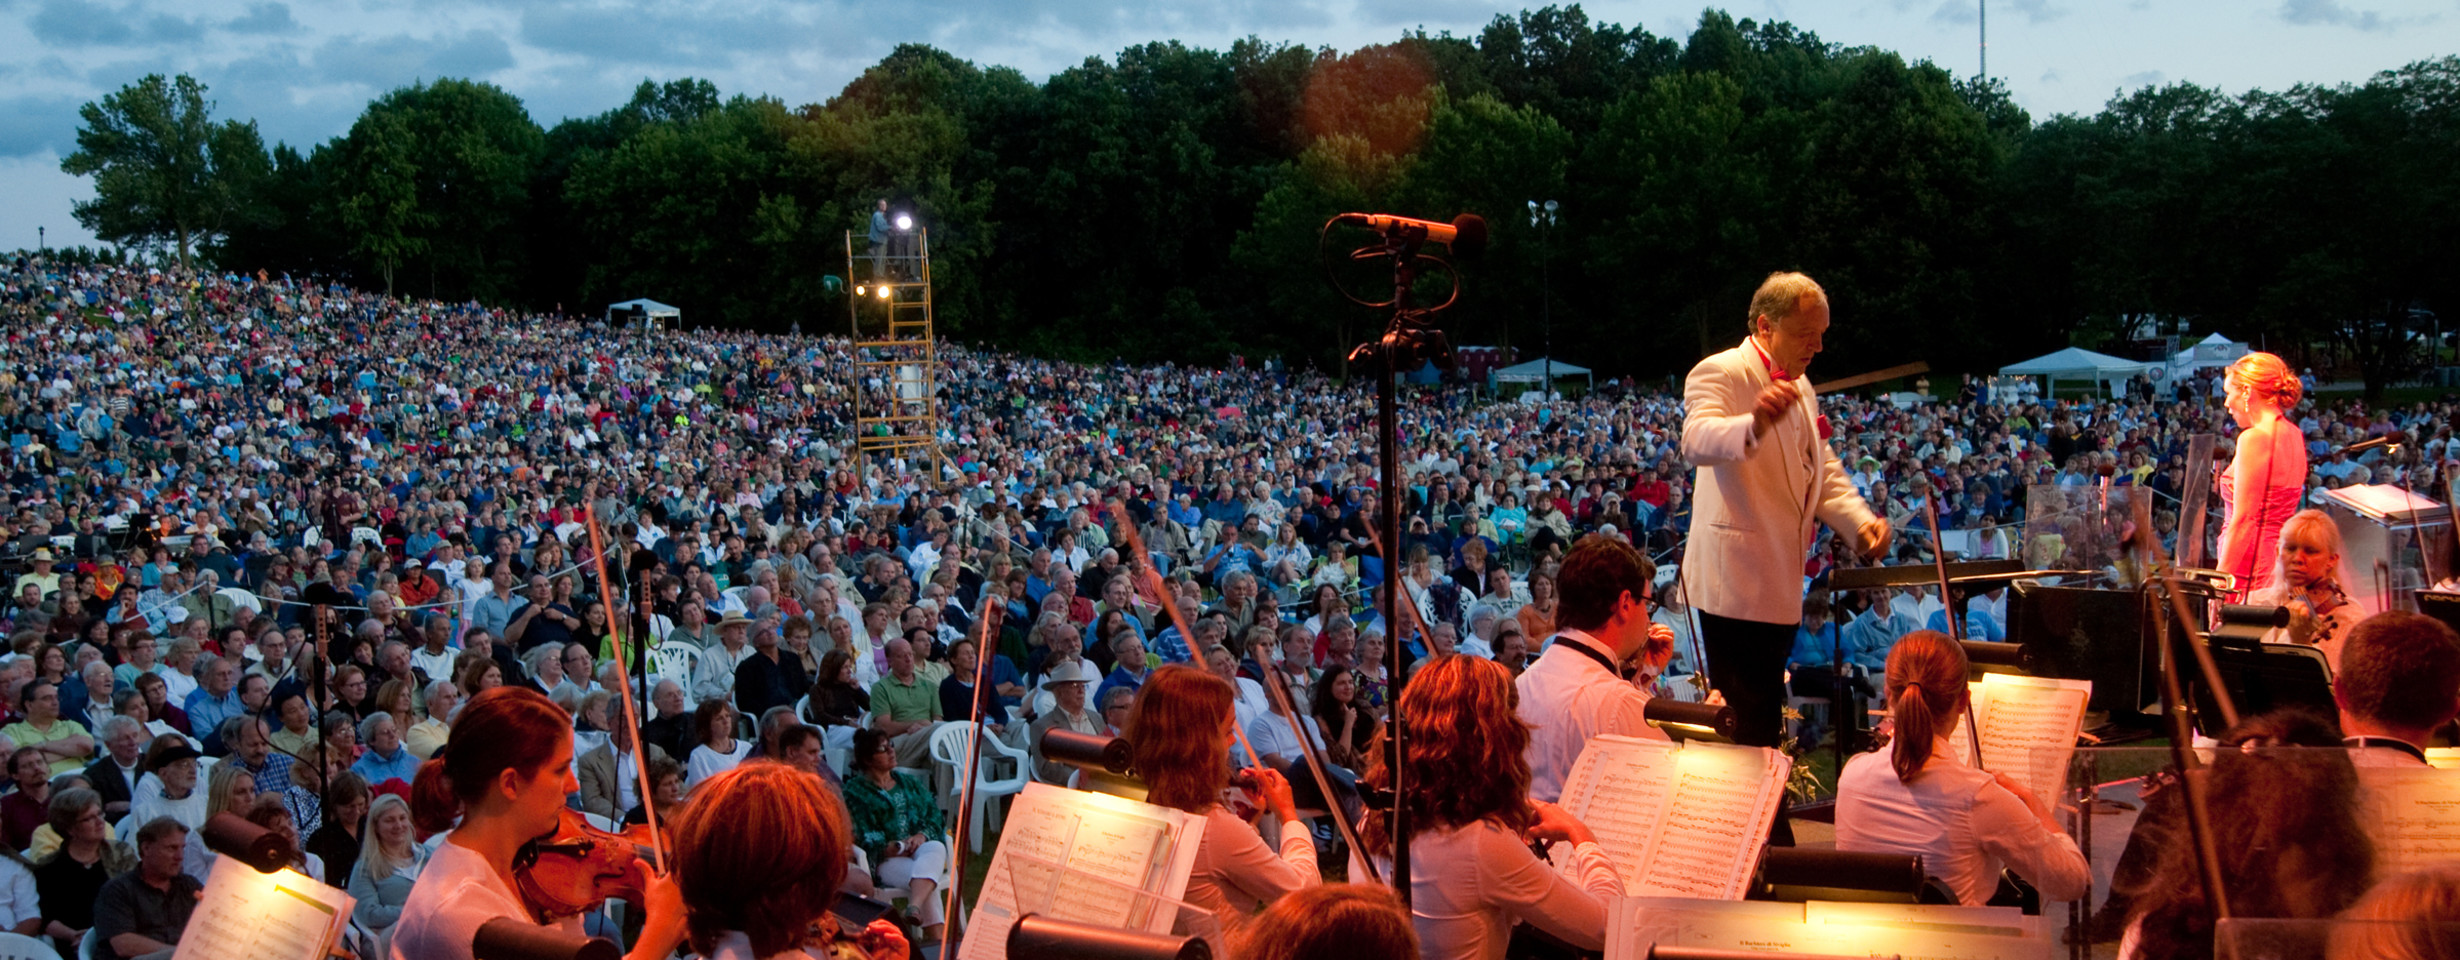 Opera in the Park: Garner Park, 333 S. Rosa Road, Madison